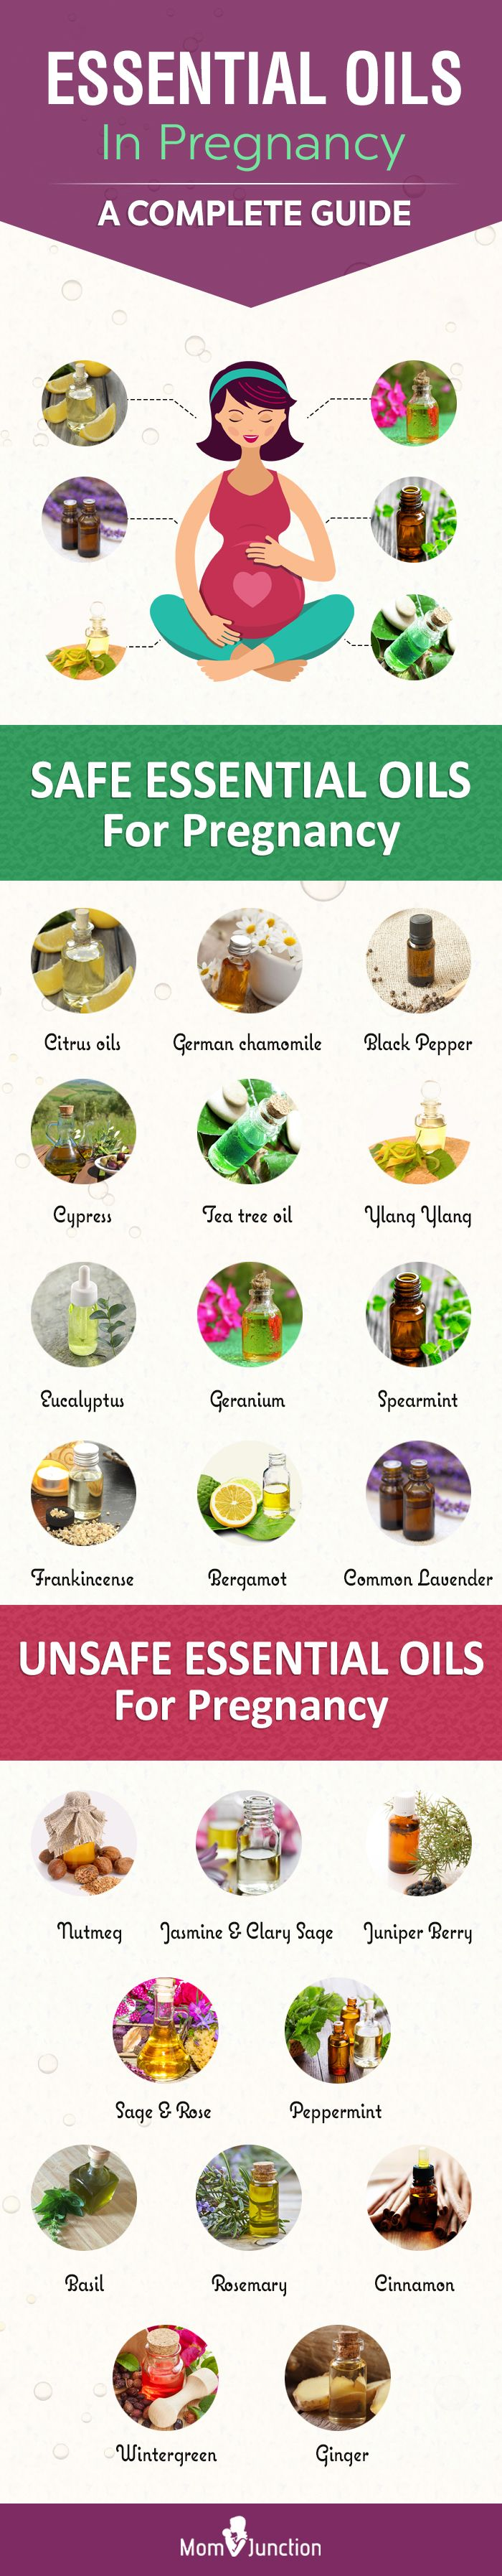 Essential Oils In Pregnancy – A Complete Guide